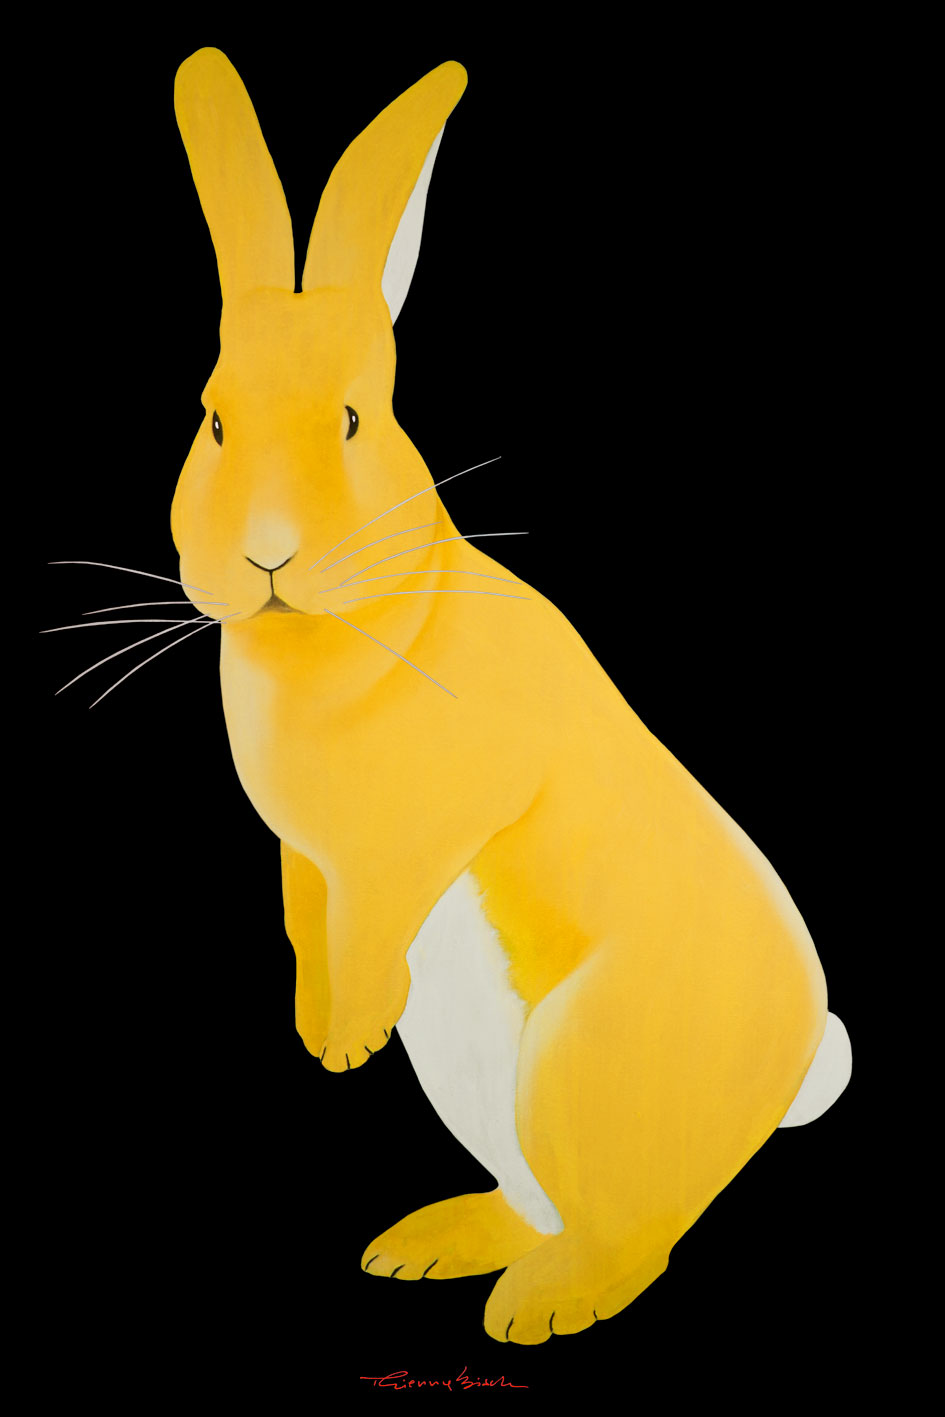 JOE RABBIT YELLOW rabbit-funny Thierry Bisch painter animals painting art decoration hotel design interior luxury nature biodiversity conservation